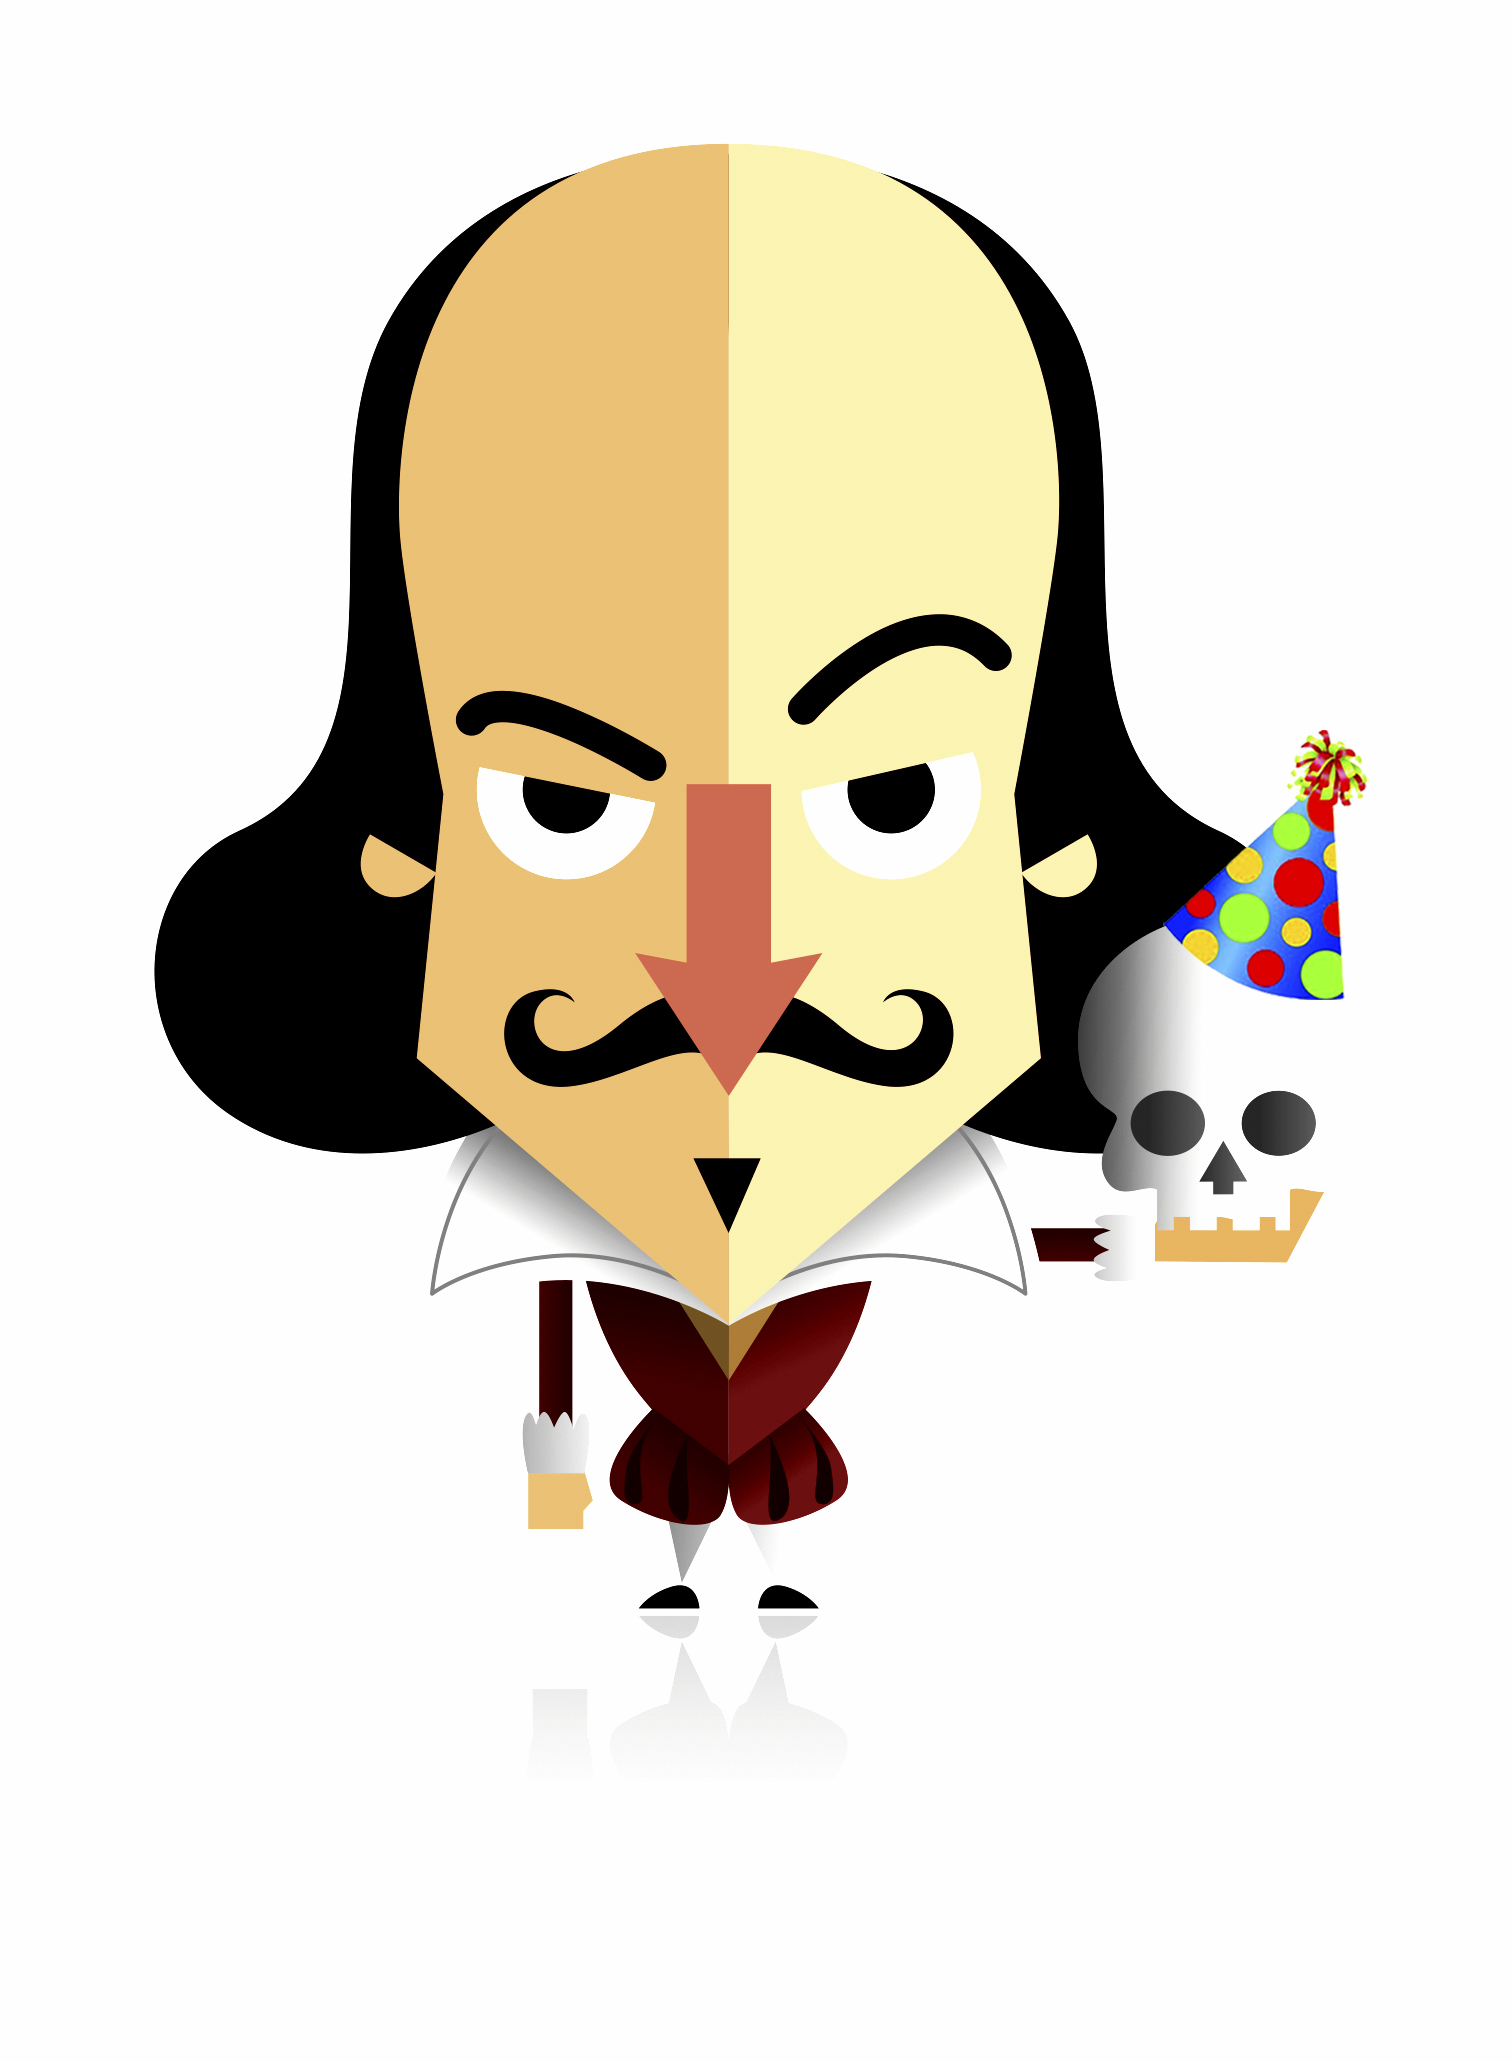 Complete works of shakespeare clipart image black and white library The Complete Works of William Shakespeare Abridged - Cornell image black and white library